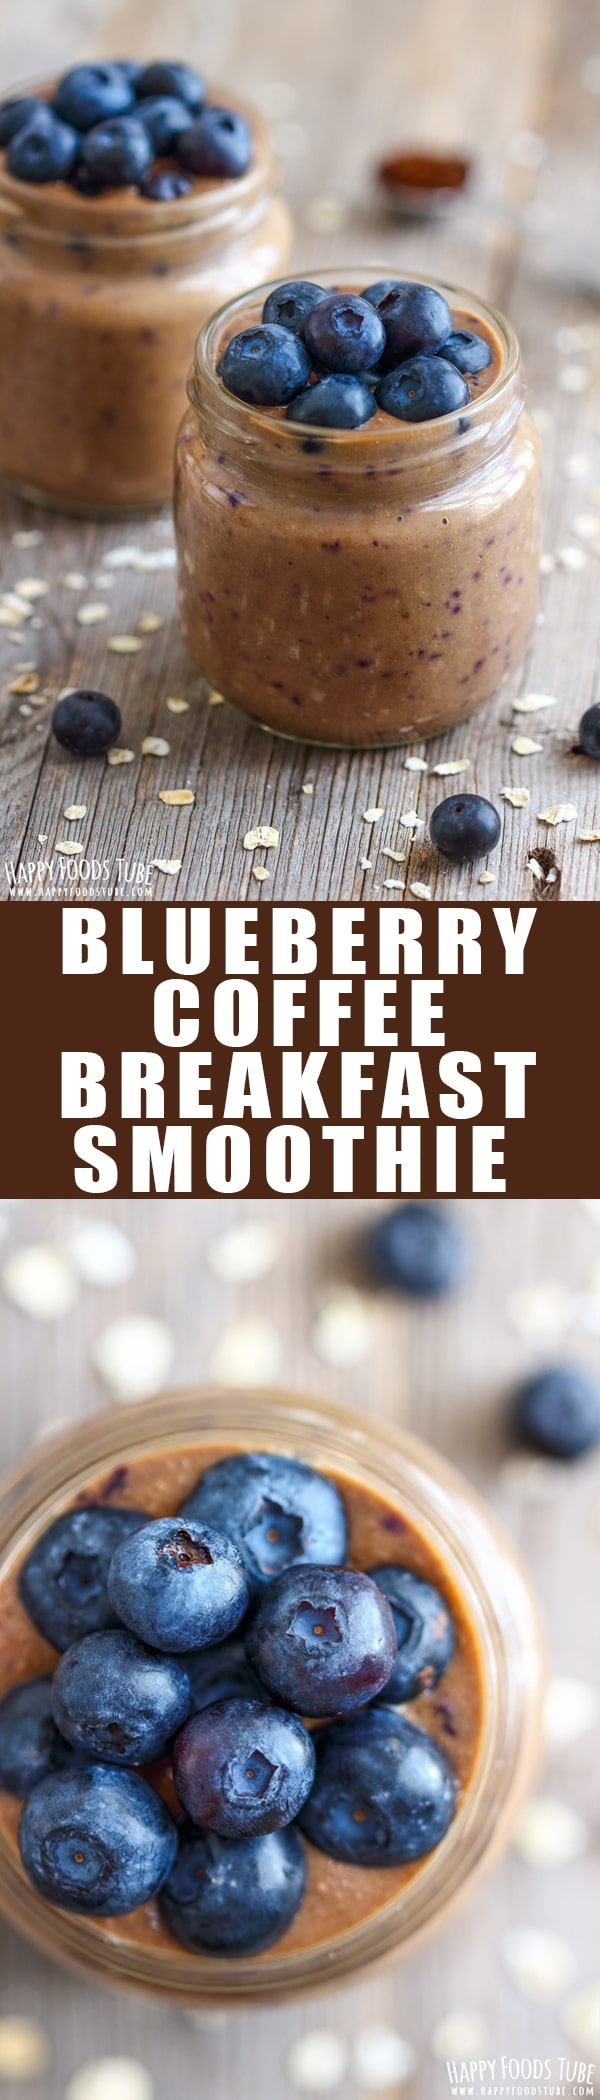 This is the ultimate breakfast for people on the go. Naturally sweet blueberry coffee breakfast smoothie is a quick and tasty way to start your day. Easy coffee smoothie recipe. Blender smoothie. Dairy free and gluten free smoothie. #smoothie #breakfast #coffee #instantcoffee #blueberry